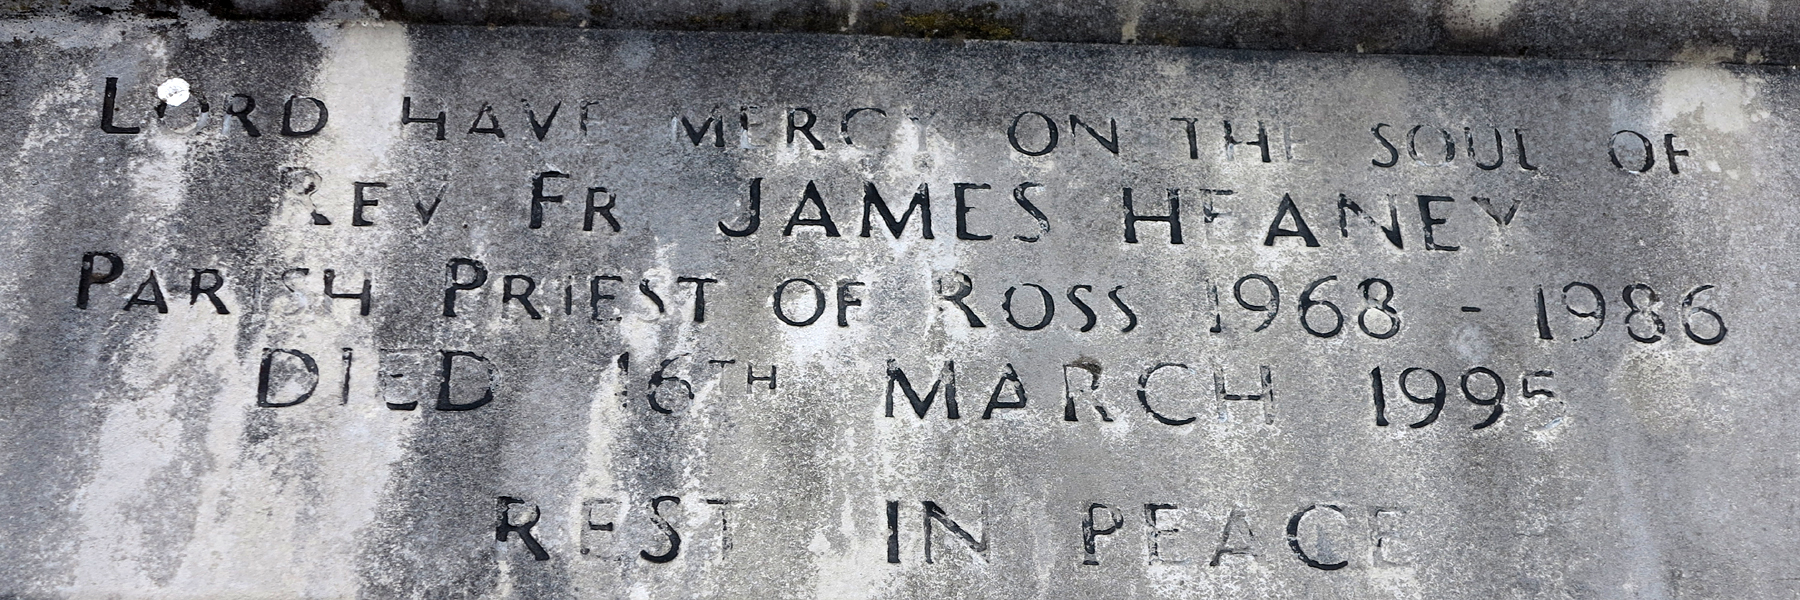 The Gravestone inscription for Fr James Heaney in Clonbur Church Grounds. - © Gerry Costello Photography